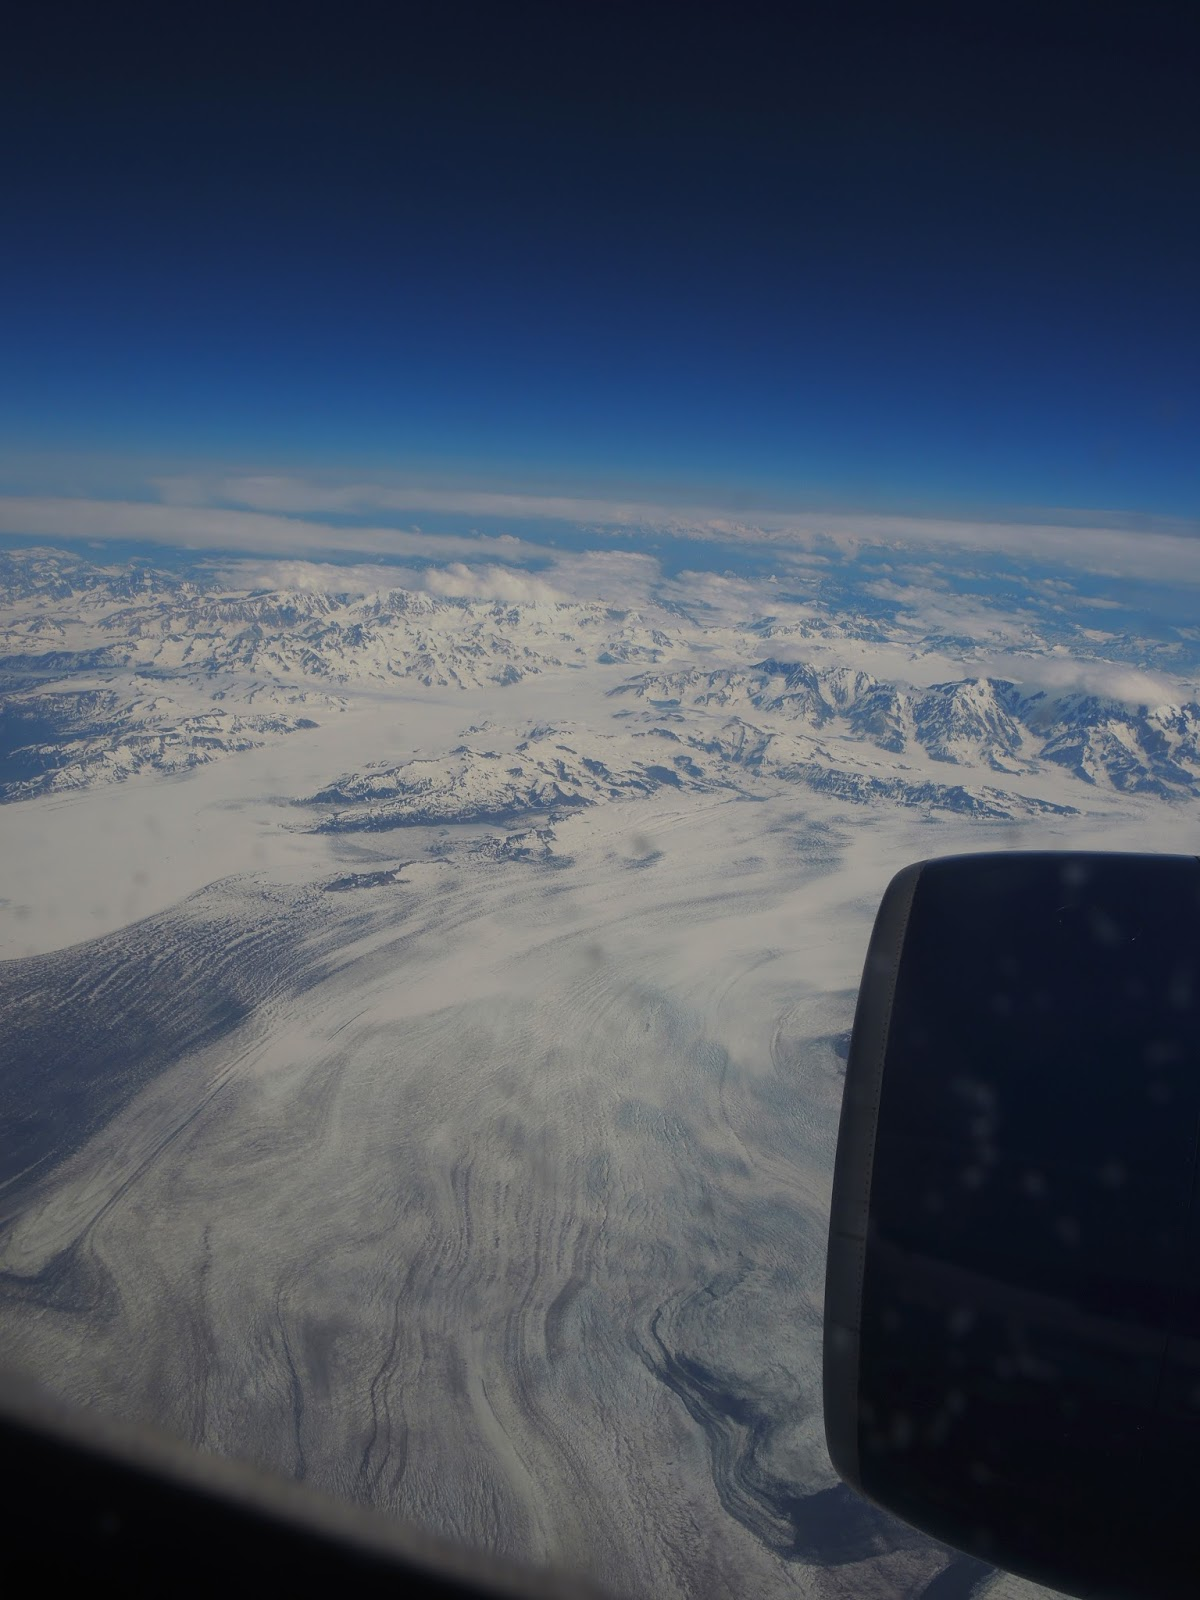 we landed in anchorage just before noon akdt we were really there the airport is pleasant and easy to navigate so we quickly got our luggage and went to